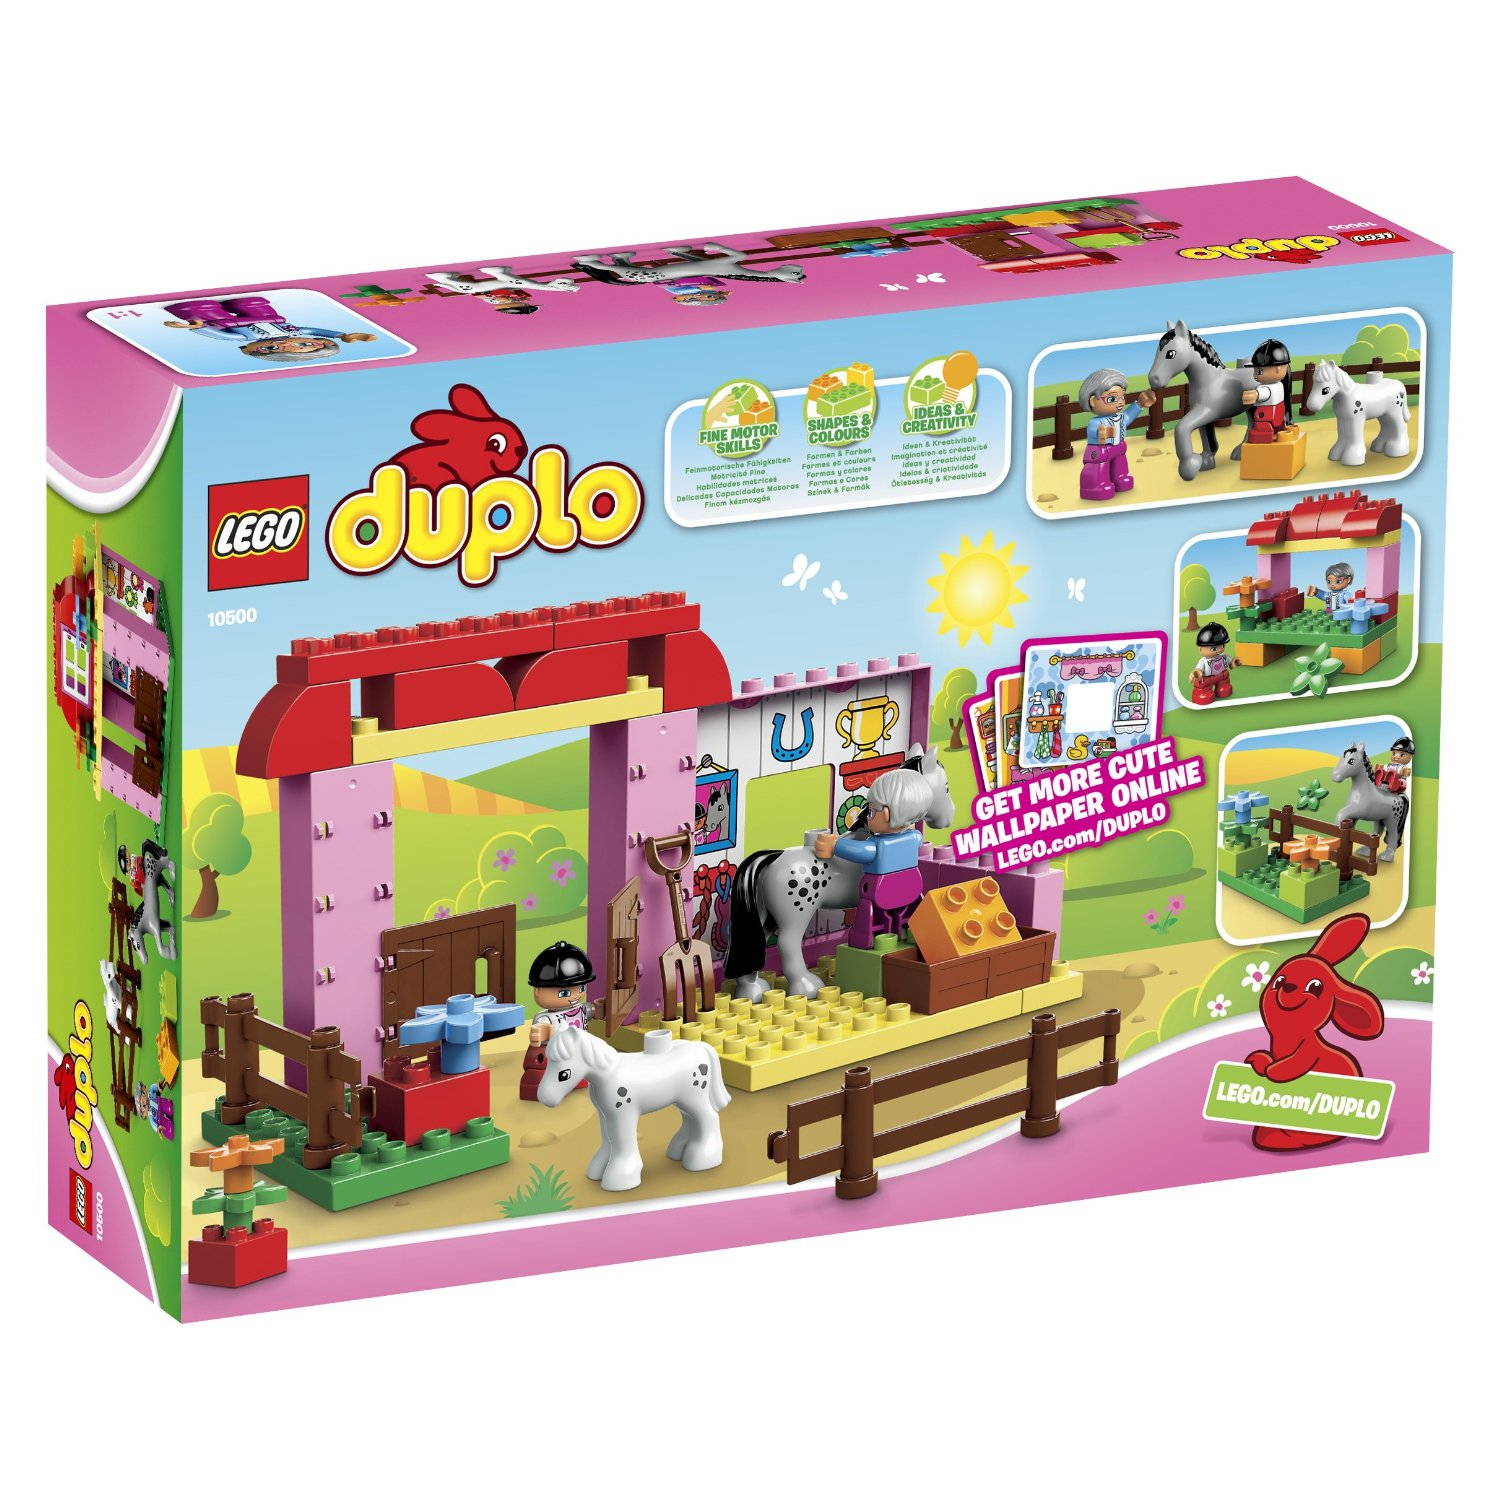 Duplo Granja Establo Girls Lego Party